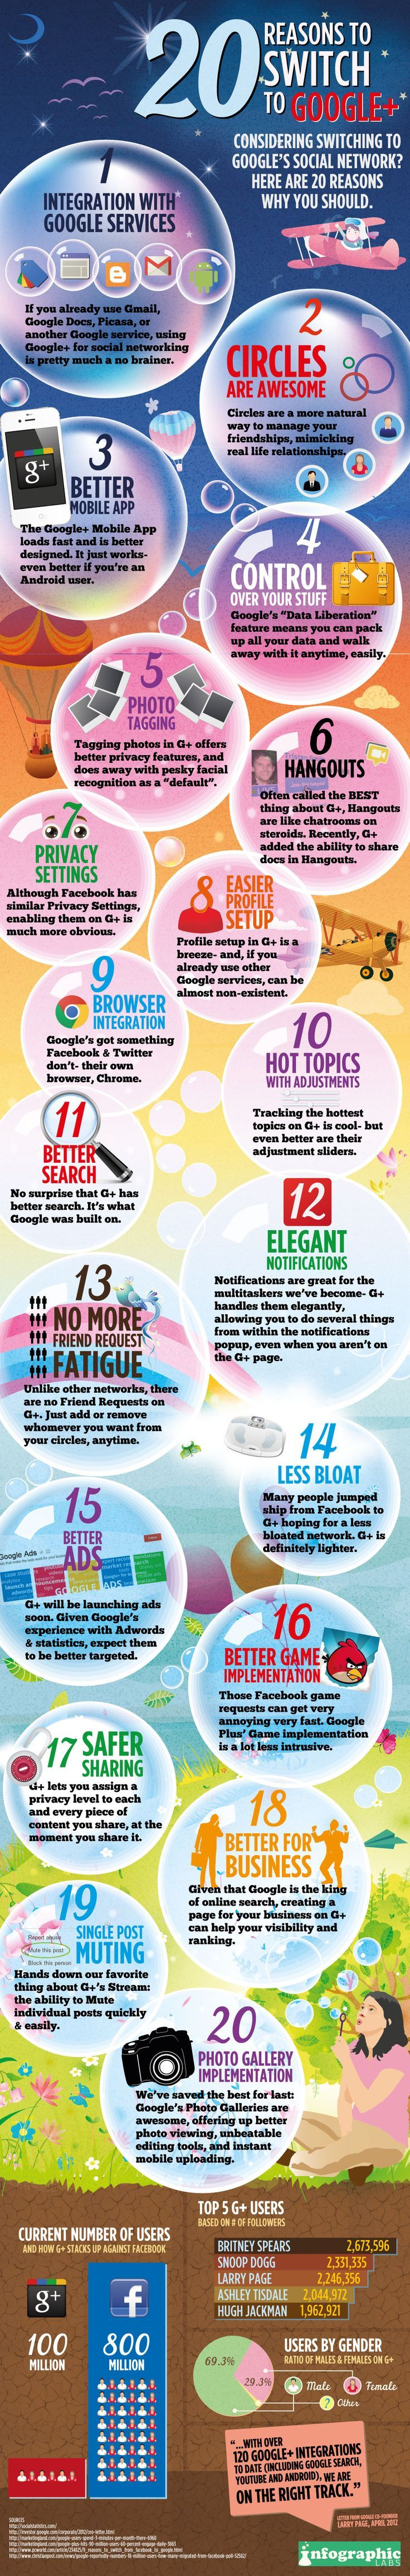 reasons to use google plus #googleplus #socialmedia #marketing